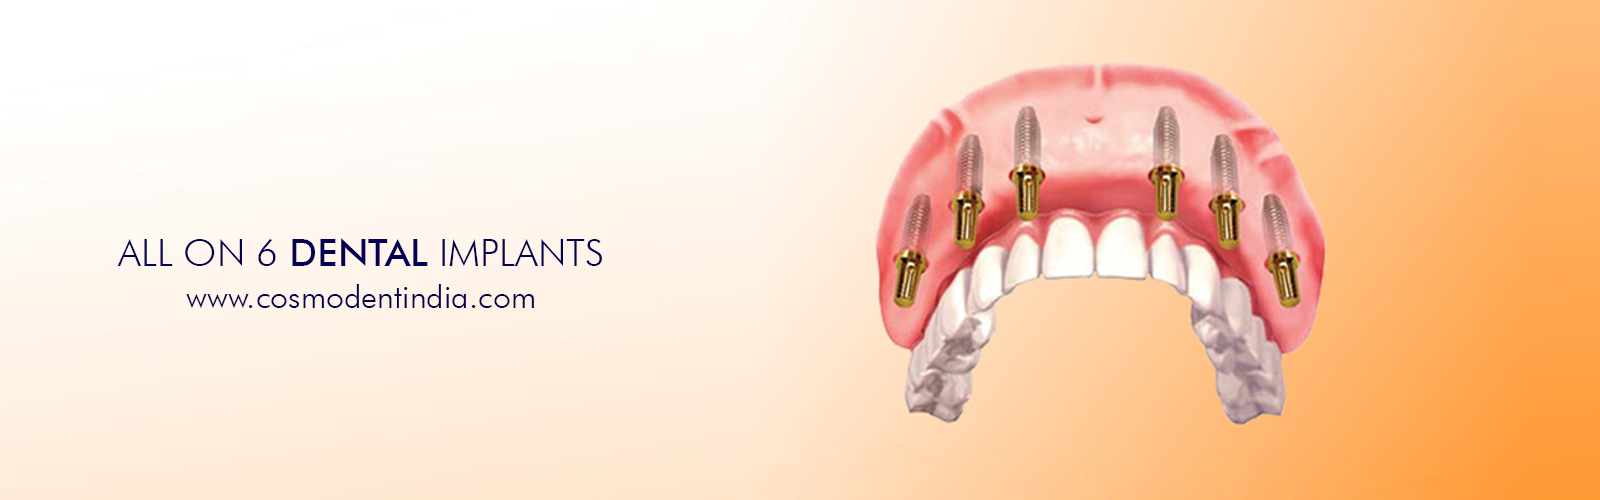 todo-en-6-implantes dentales-india